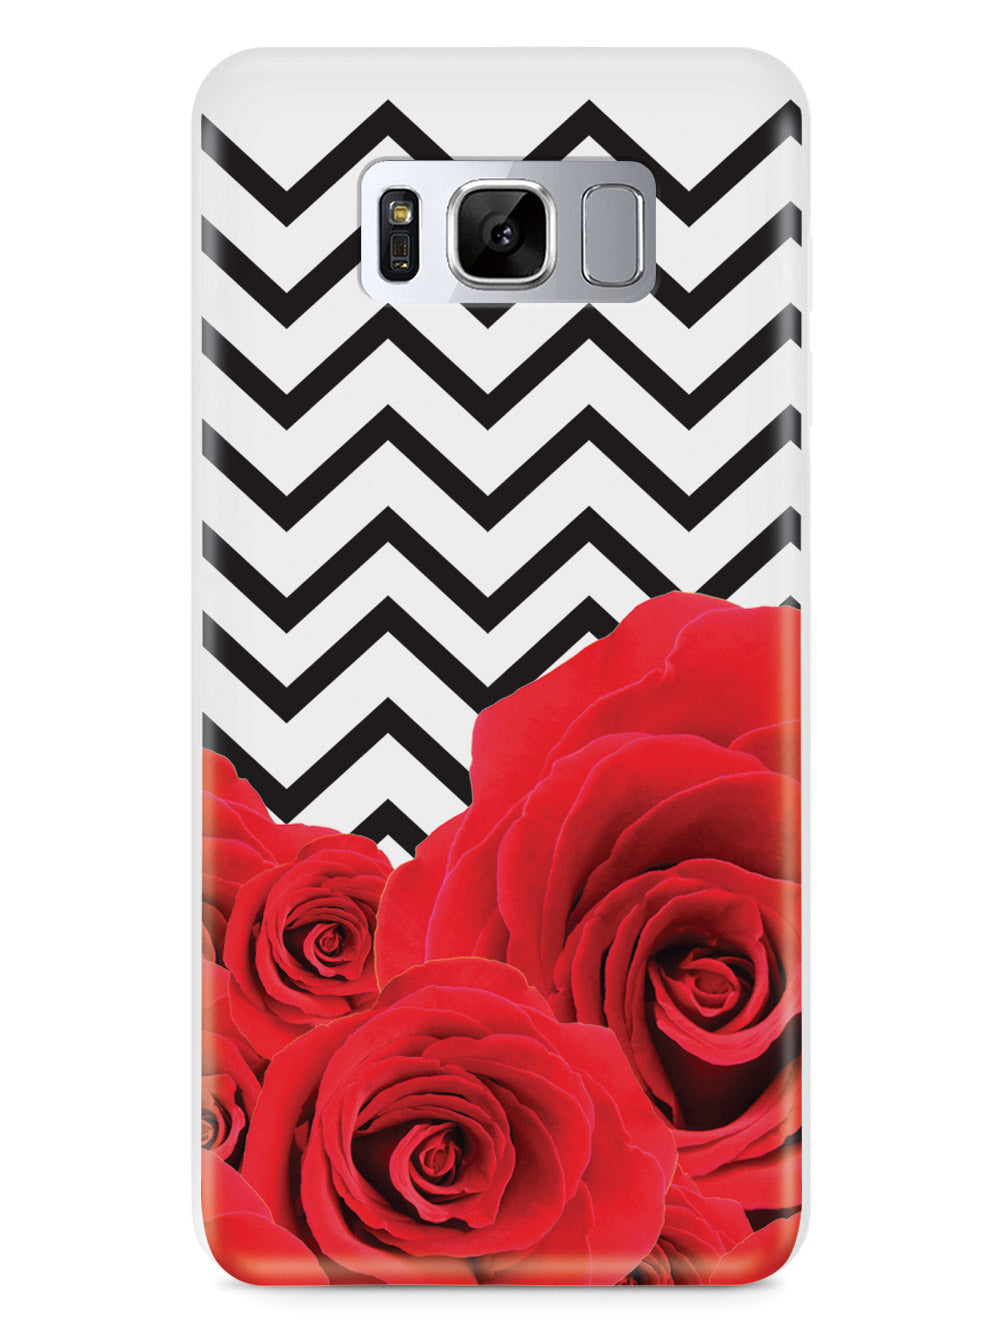 Chevron Pattern & Roses Case